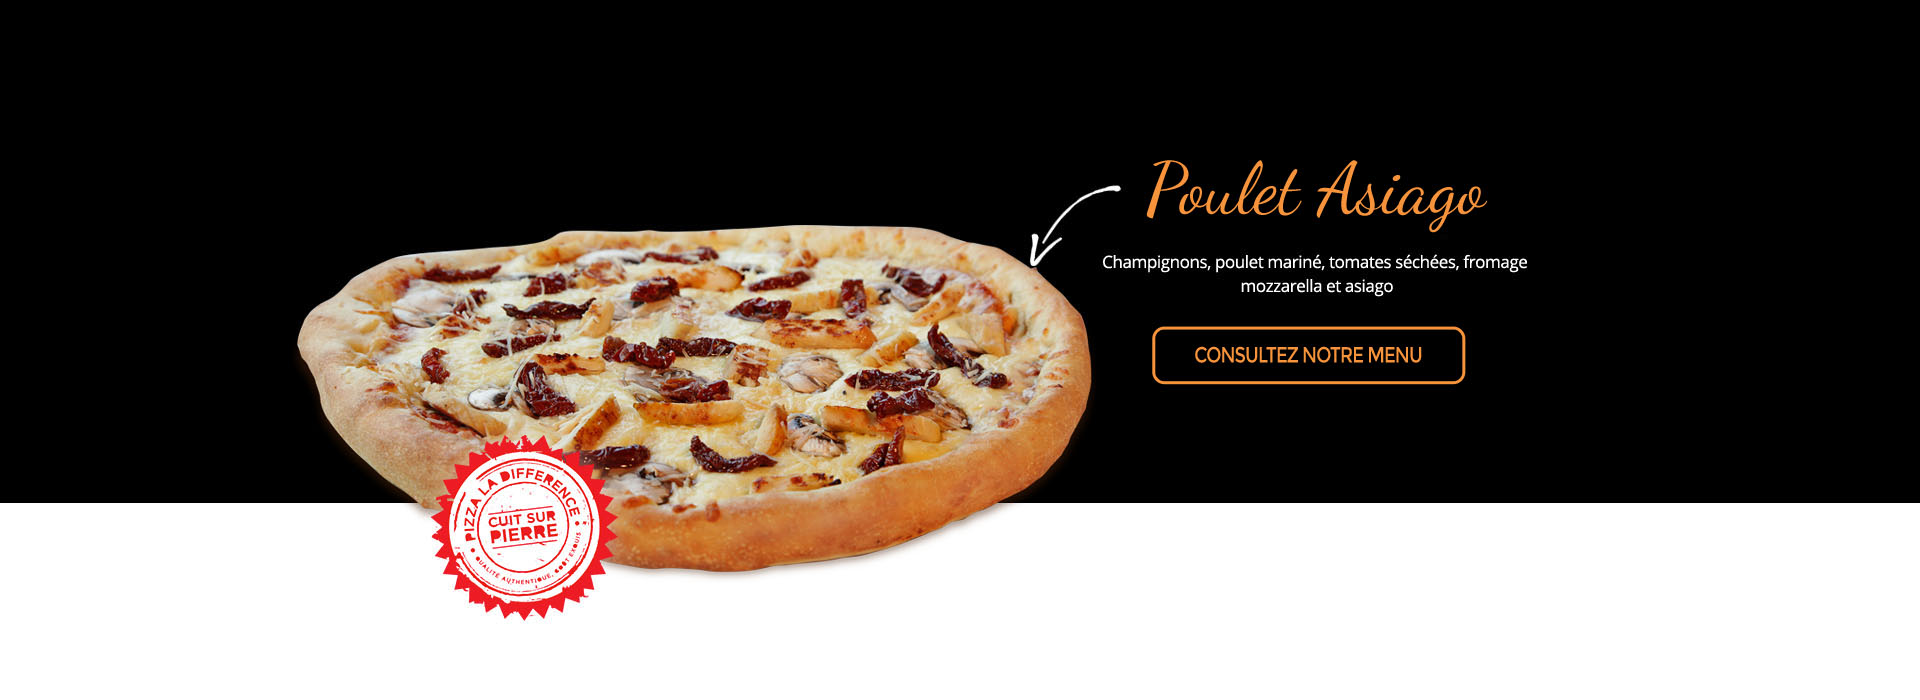 pizza-la-difference-poulet-asiago-2019